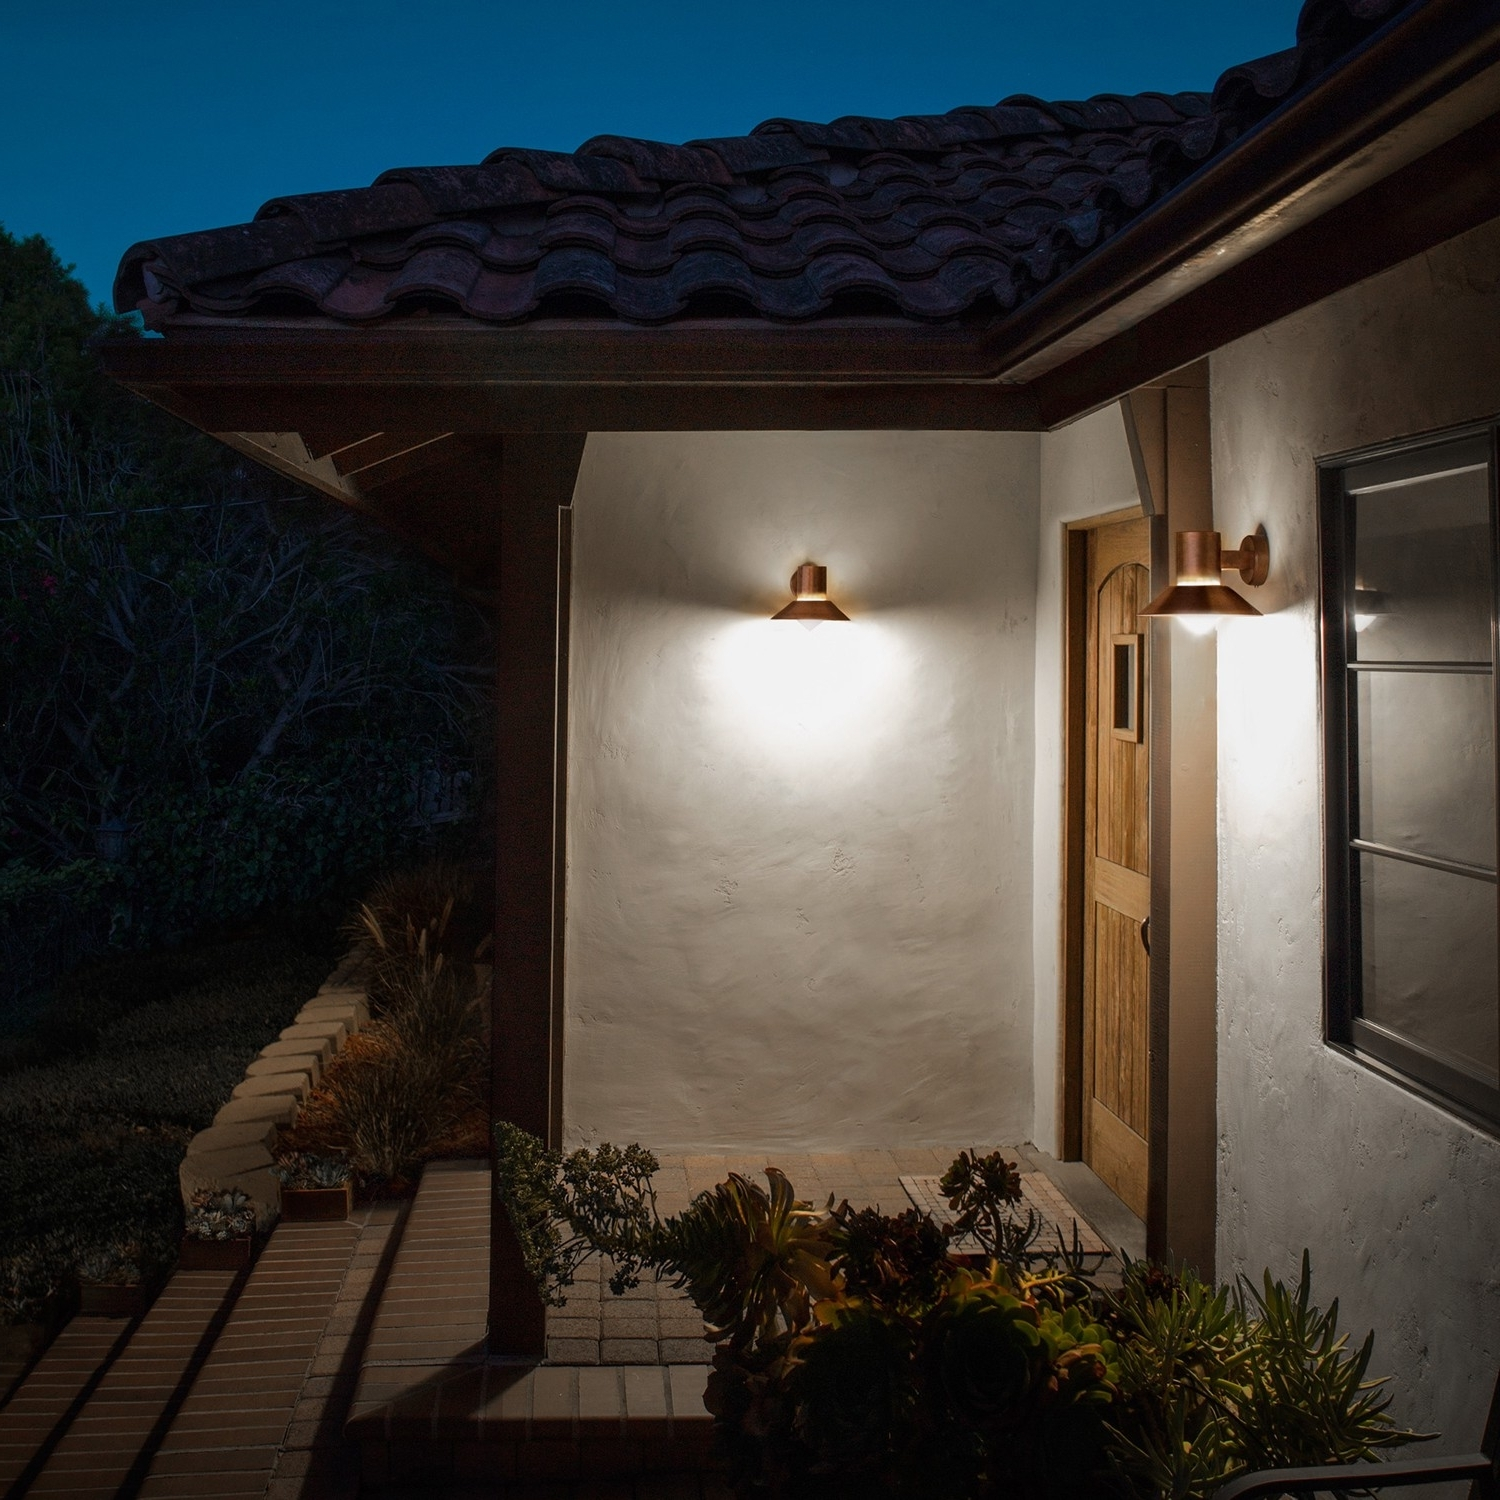 Most Recently Released Modern Patio Outdoor Light Fixtures Regarding Outdoor And Patio: How To Install Outdoor Wall Lighting ~ Fileove (View 13 of 20)